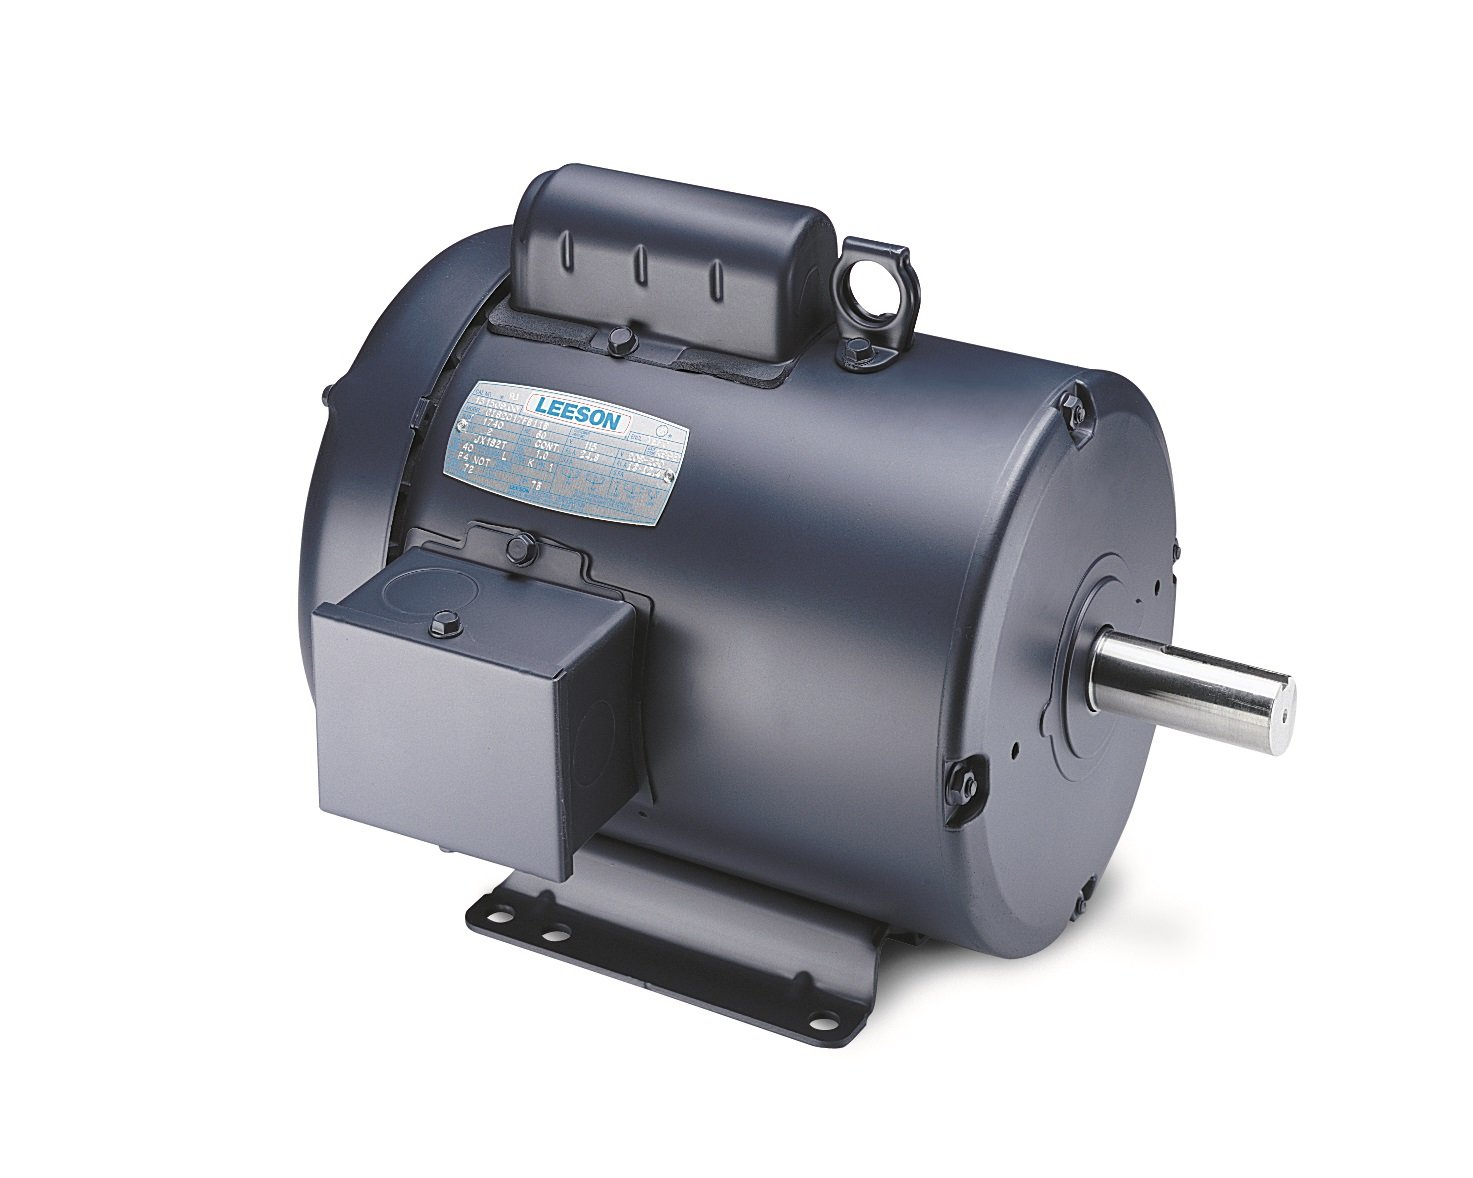 Leeson 102015.00 General Purpose TEFC Motor, 1 Phase, 48 Frame, Rigid Mounting, 1/4HP, 1200 RPM, 115/208-230V Voltage, 60Hz Fequency